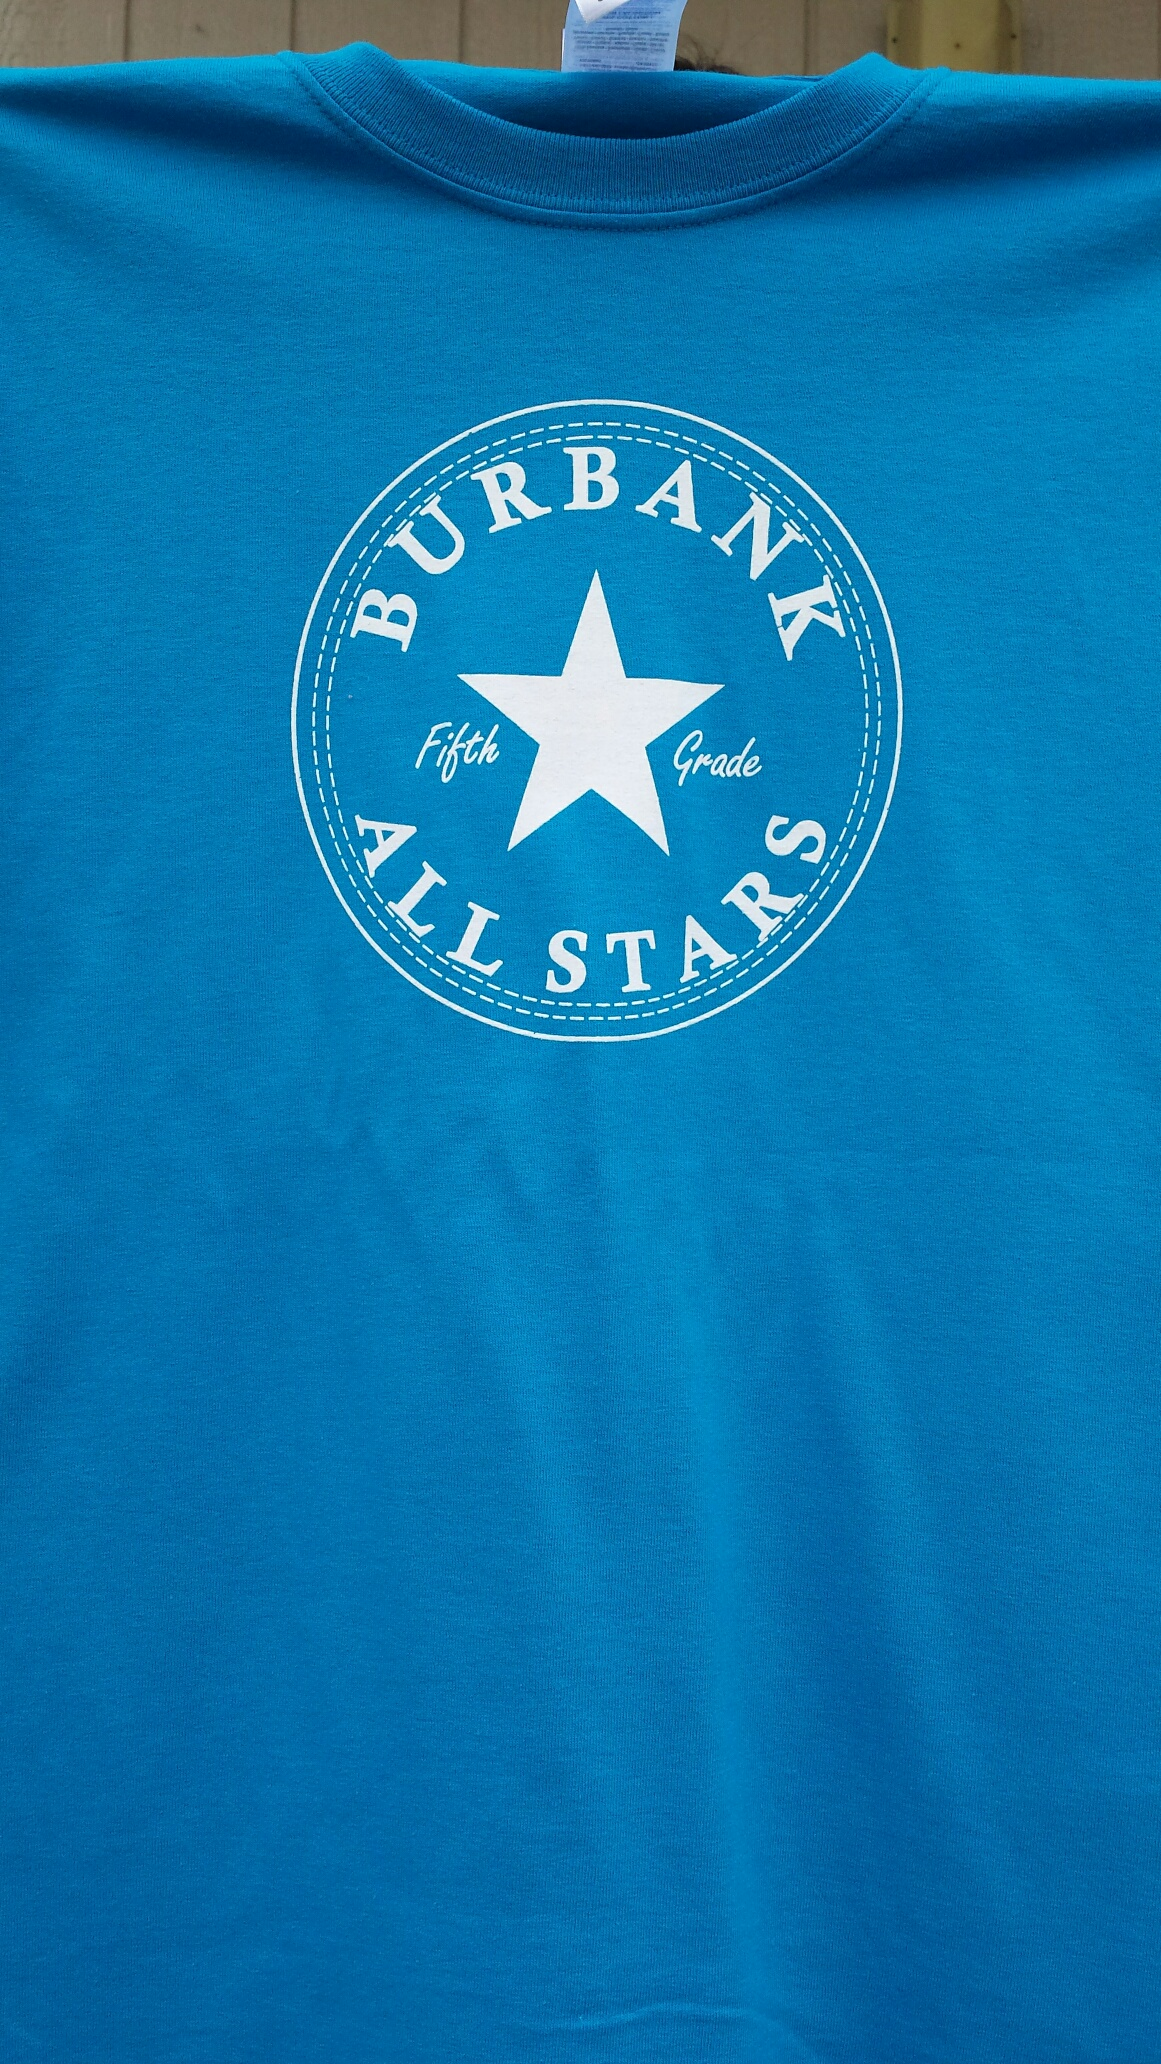 Wear Your Burbank Gear Friday May 12 2017  a.jpg